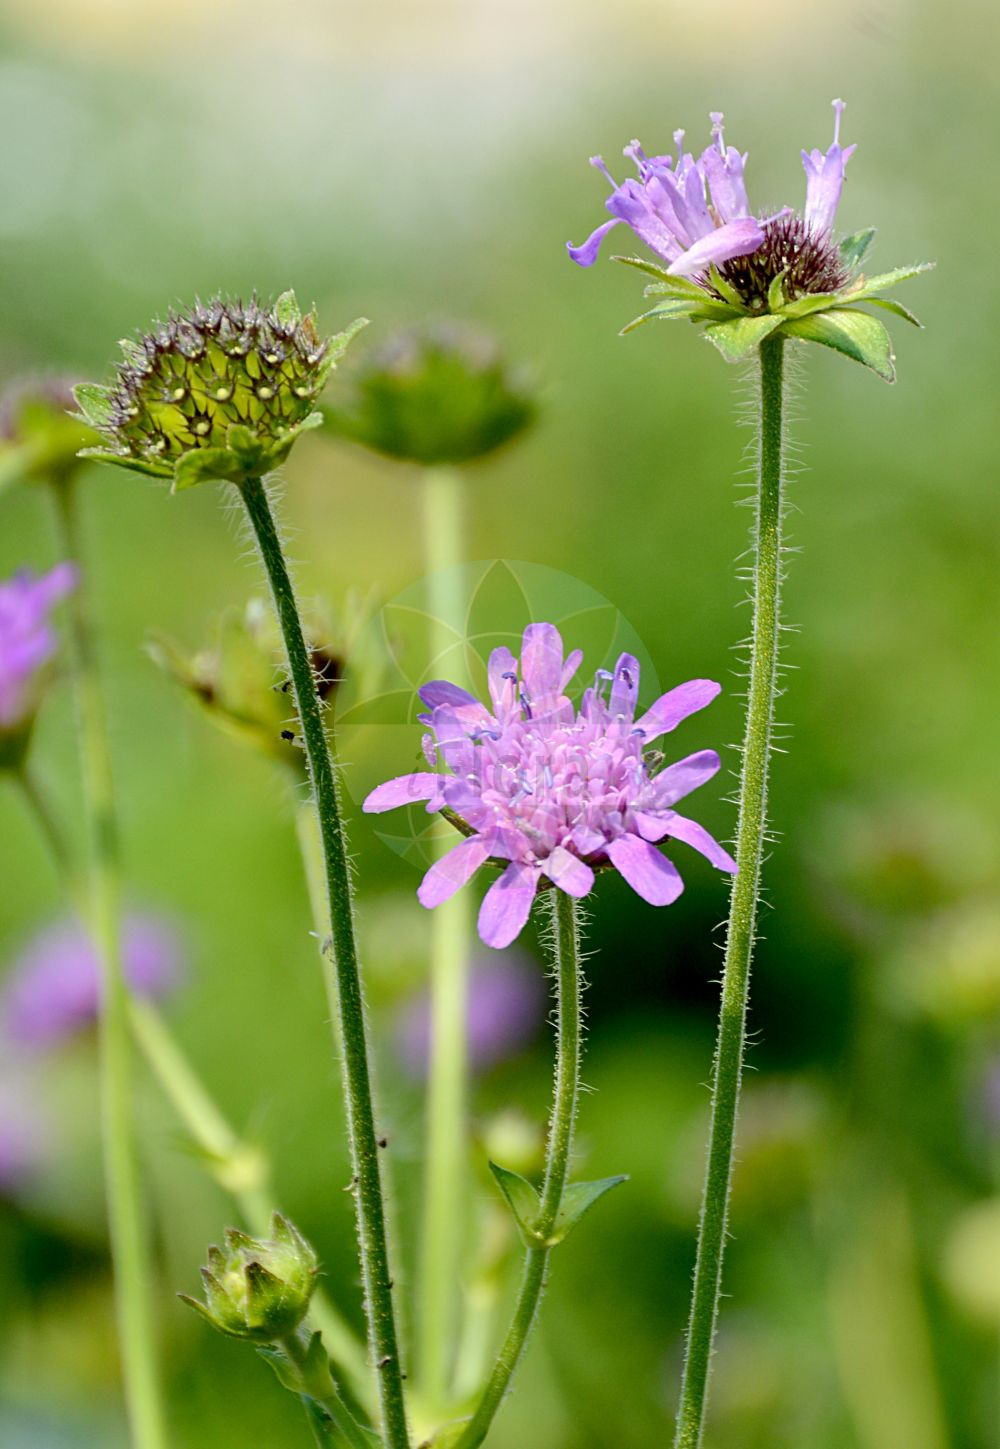 Foto von Knautia maxima (Wald-Witwenblume - Wood Scabious). Das Foto wurde in Bonn, Nordrhein-Westfalen, Deutschland aufgenommen. ---- Photo of Knautia maxima (Wald-Witwenblume - Wood Scabious).The picture was taken in Bonn, North Rhine-Westphalia, Germany.(Knautia maxima,Wald-Witwenblume,Wood Scabious,Scabiosa maxima,Gewoehnliche ,Forest Widow Flower,Knautia,Witwenblume,Scabious,Caprifoliaceae,Geissblattgewaechse,Honeysuckle family)